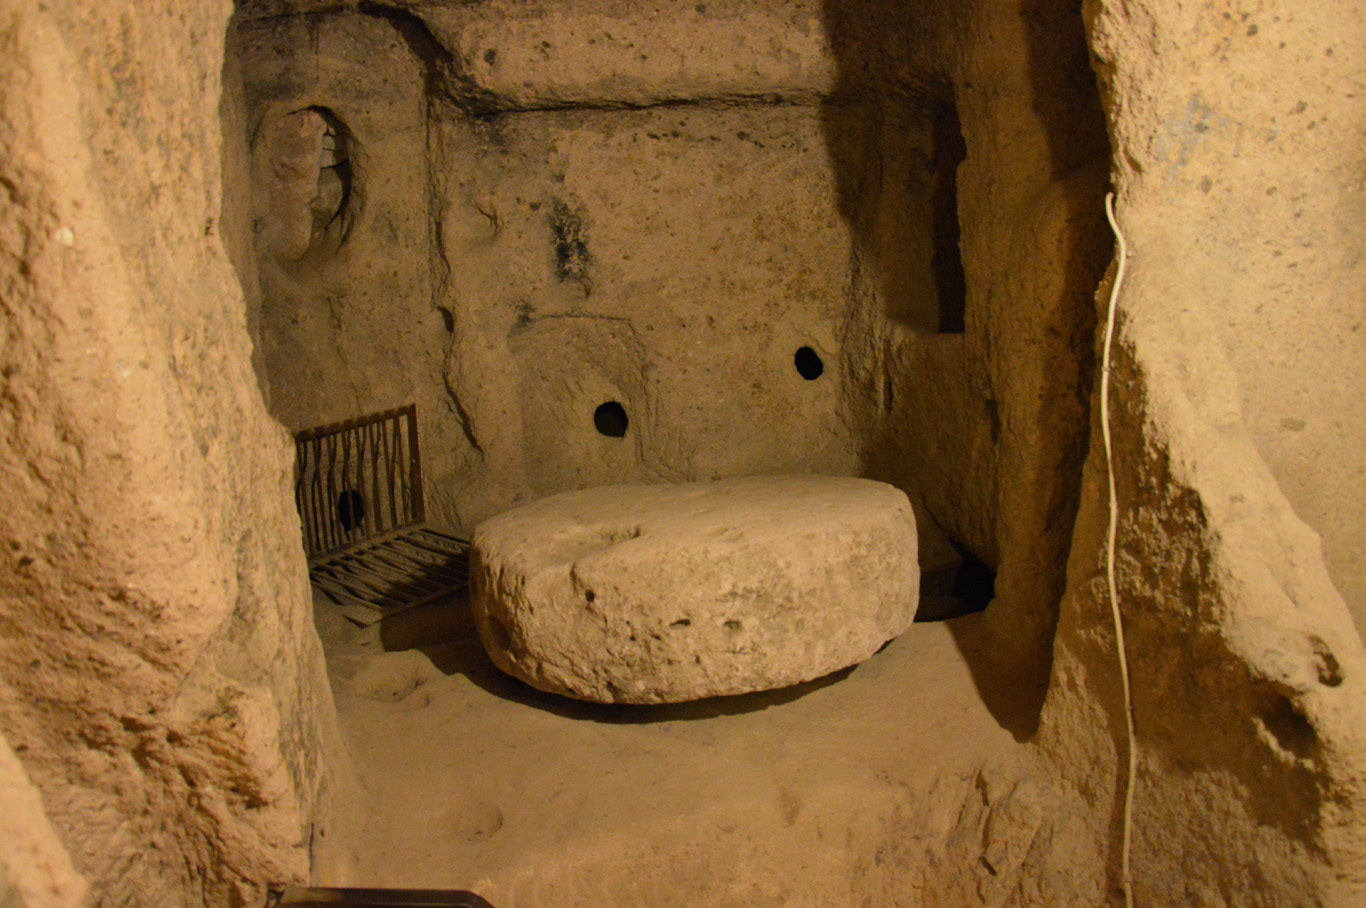 Kaymakli Underground City - stone used to grind grapes for wine